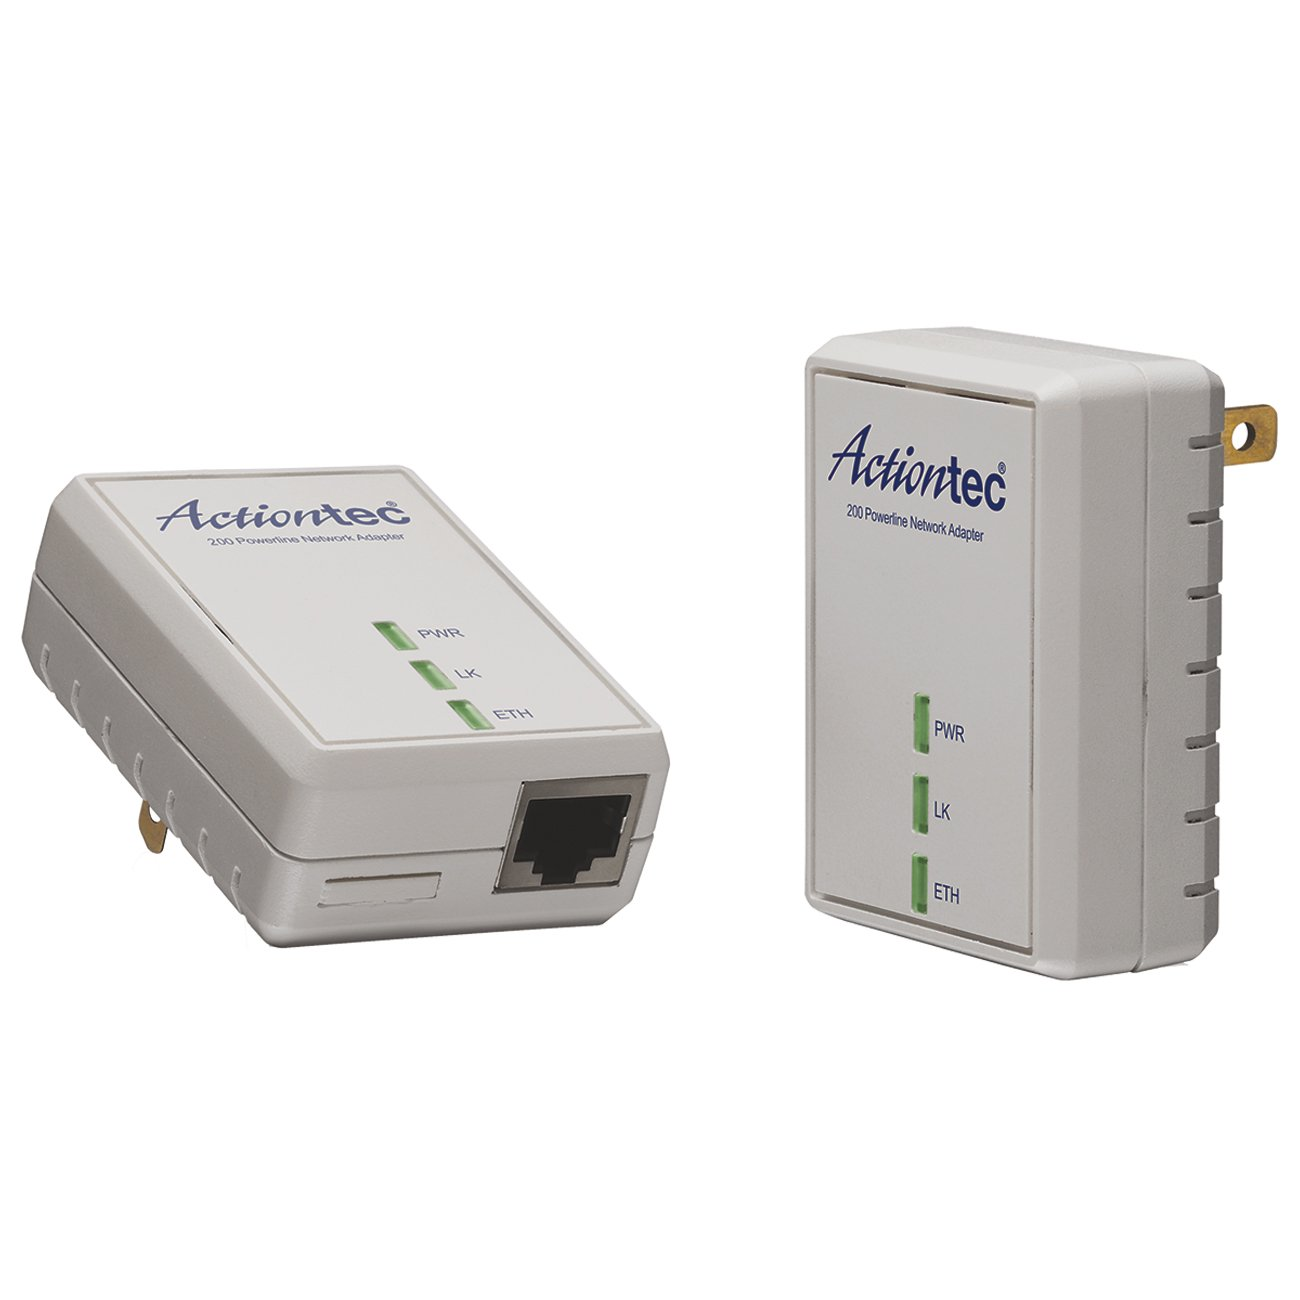 amazon com actiontec 200 mbps powerline network adapter kit rh amazon com